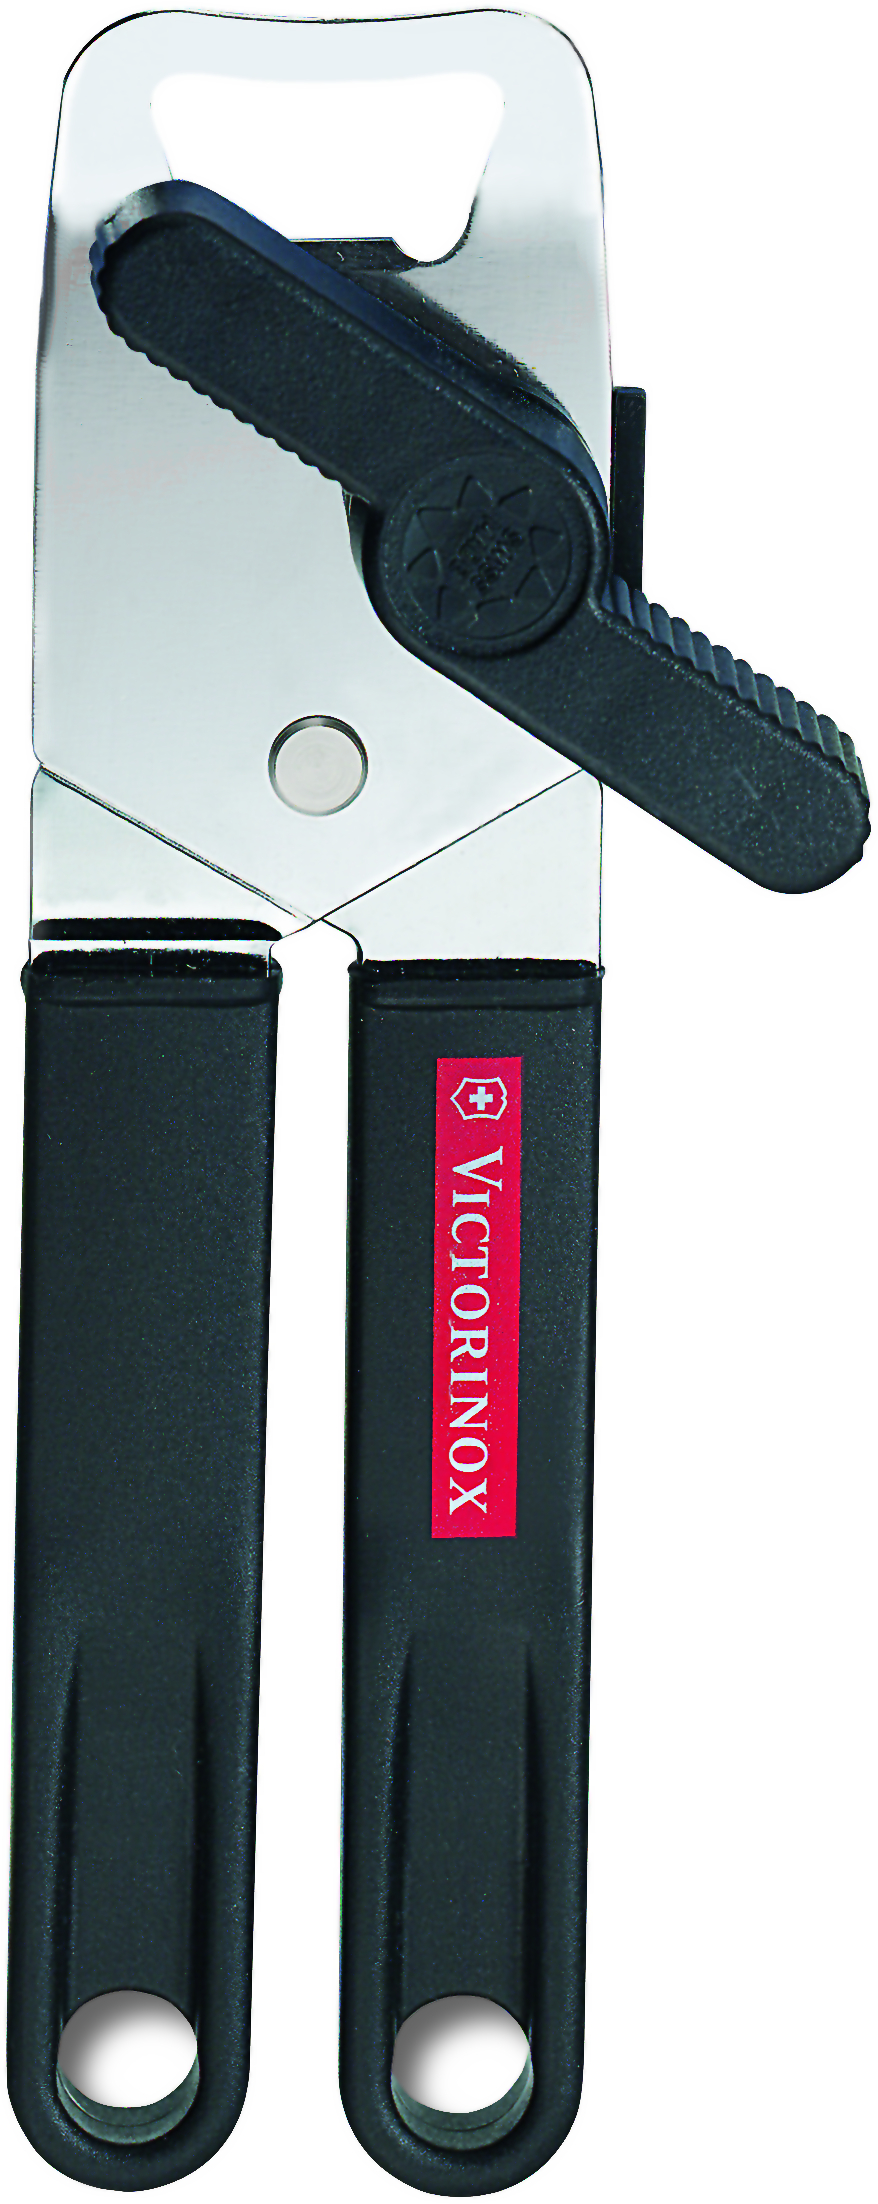 Victorinox Hand-Held Can Opener with Black Polypropylene Handle